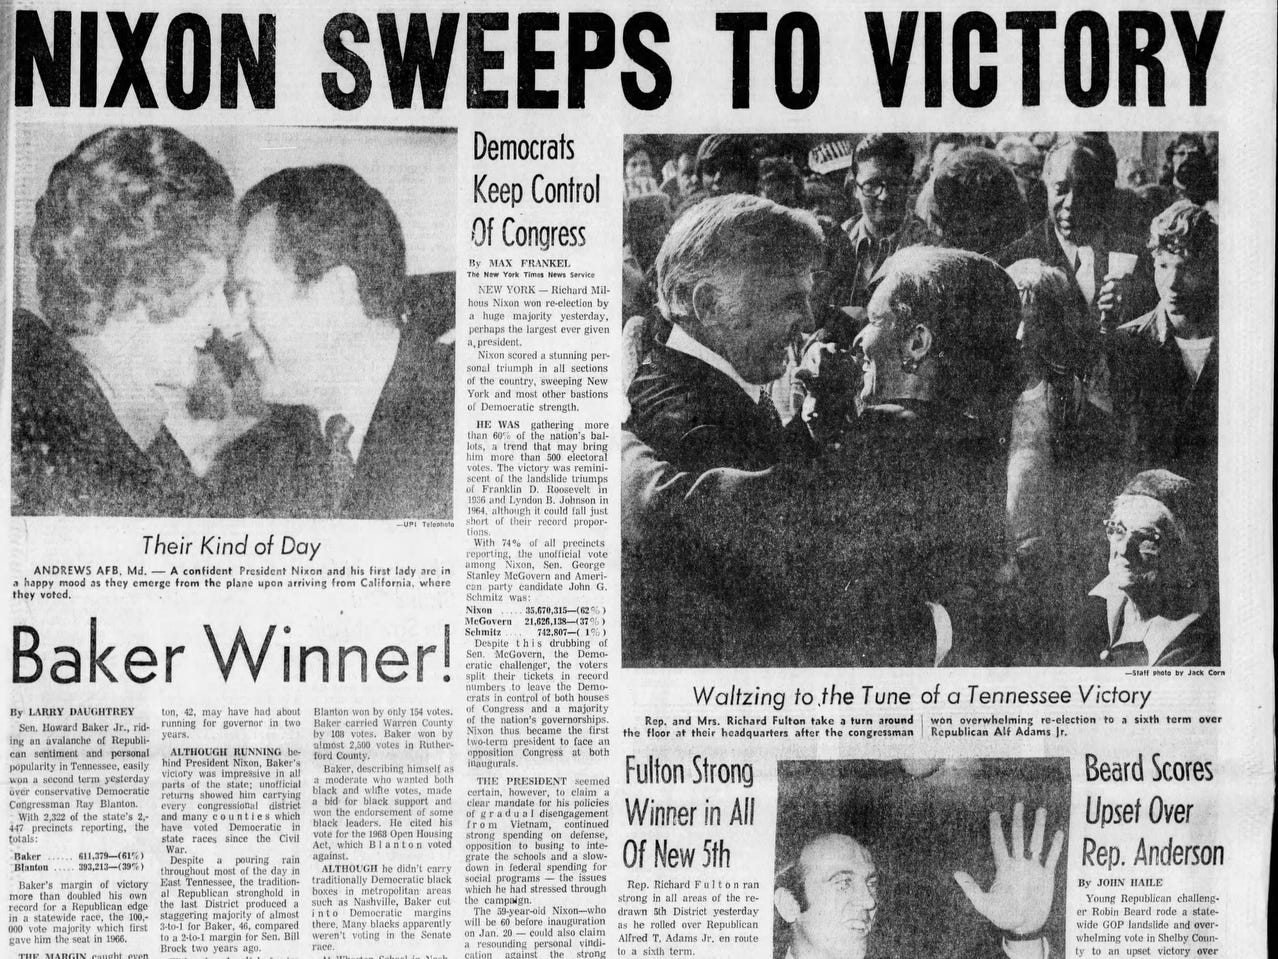 The front page of the Nov. 8, 1972 of The Tennessean which Richard M. Nixon won the presidential election.